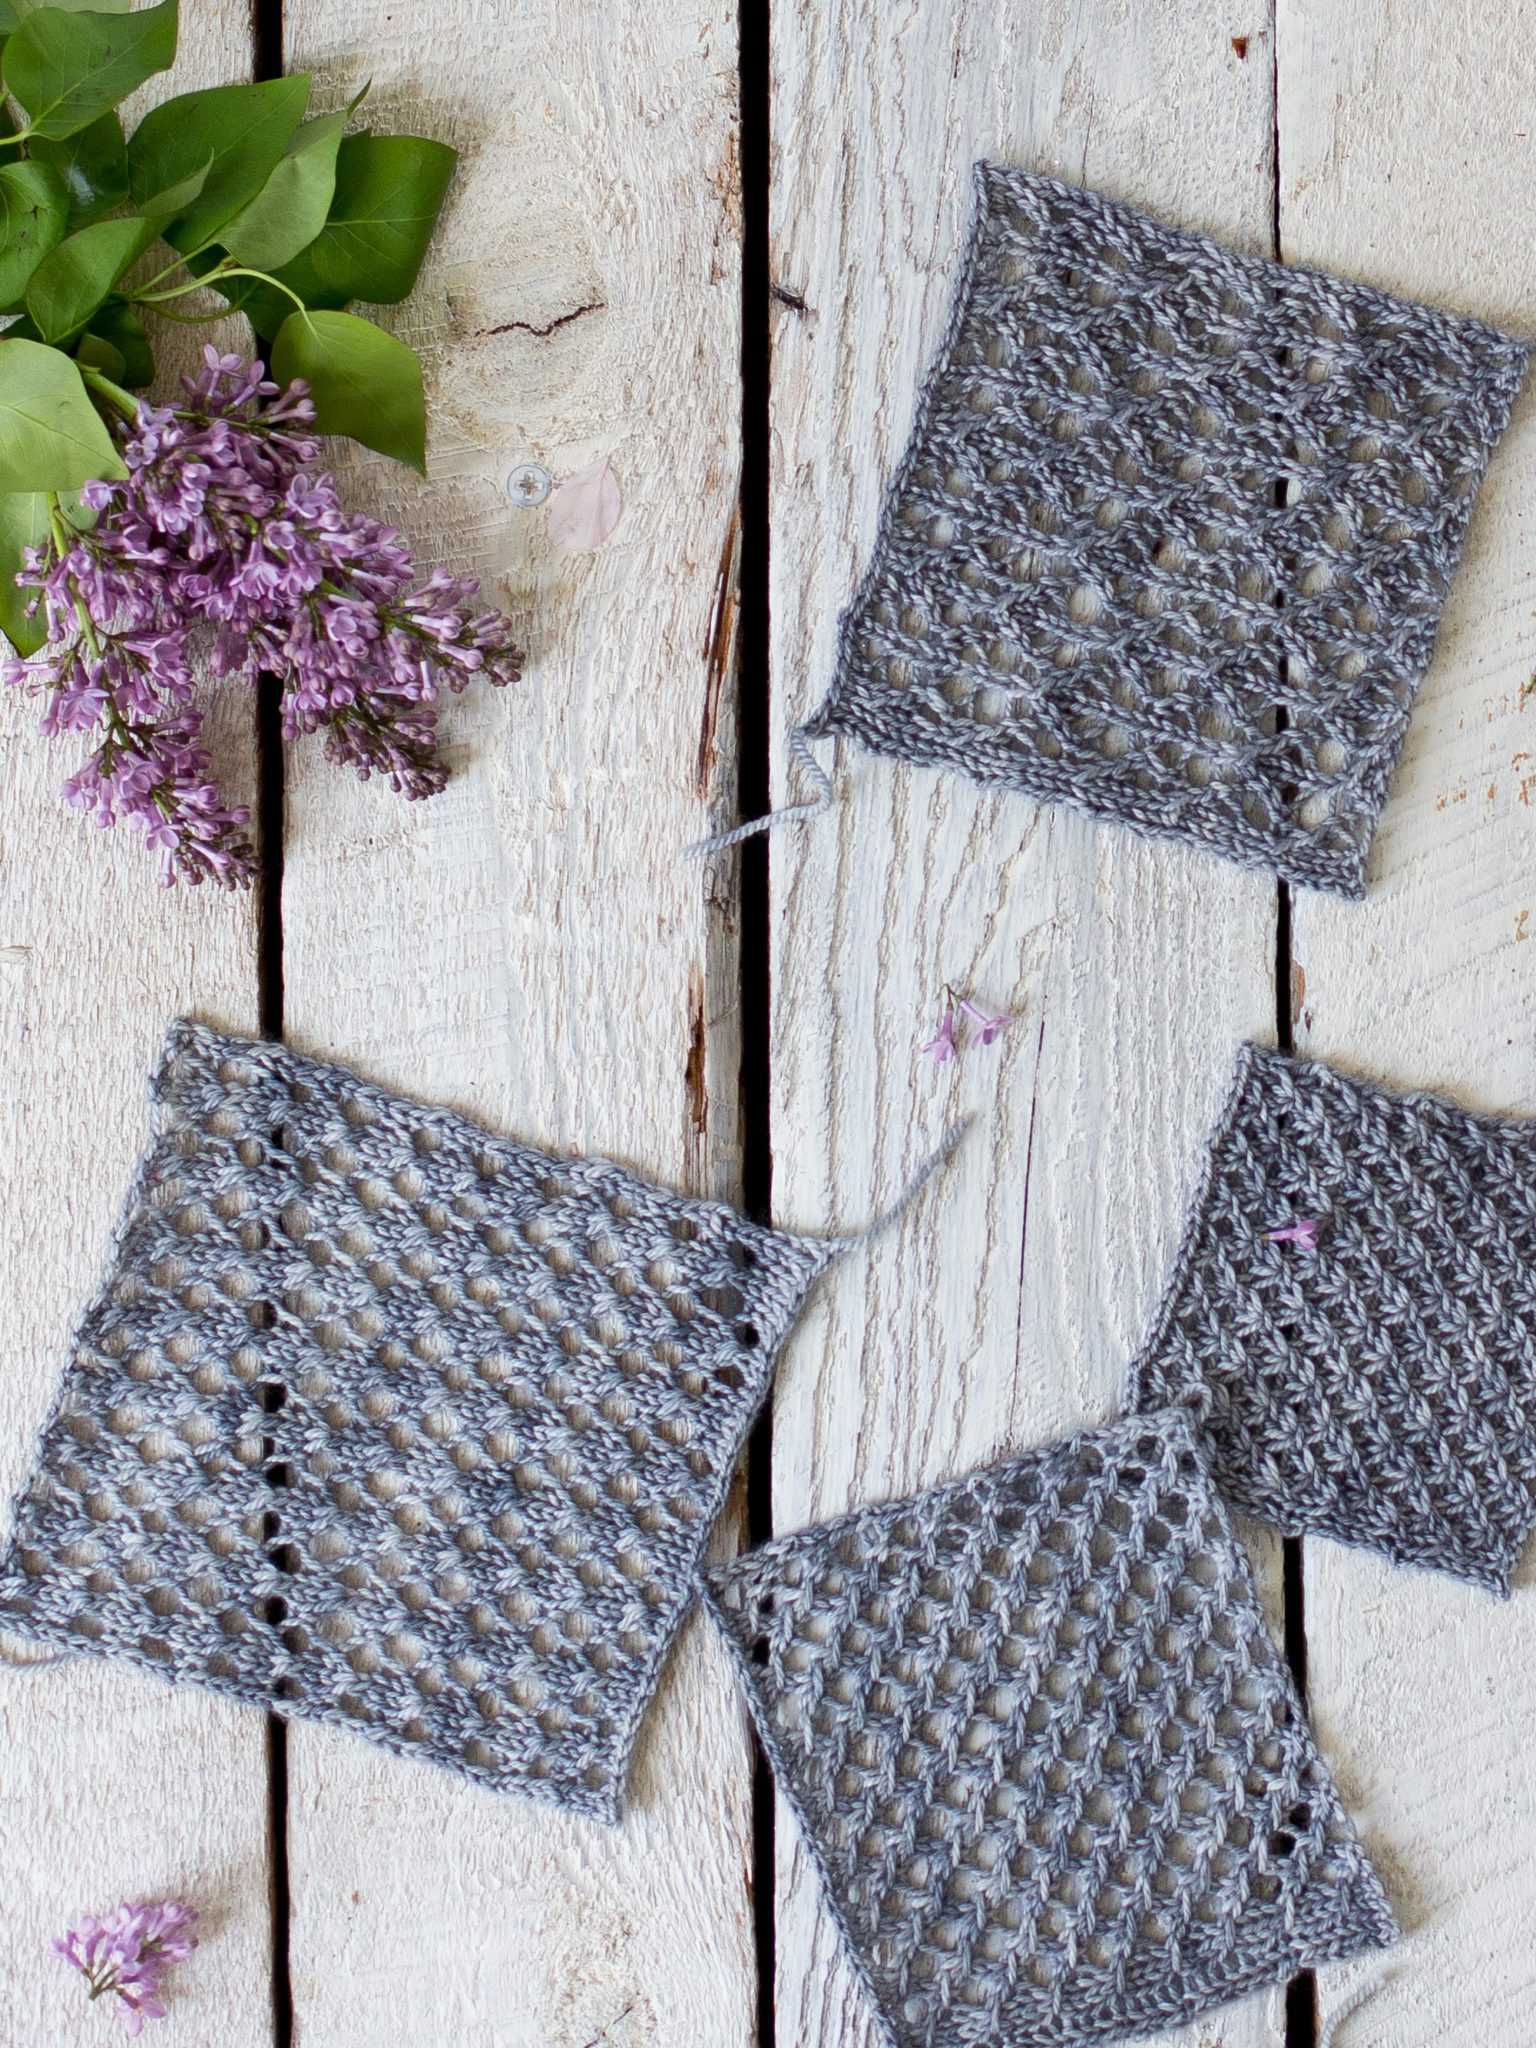 Lace Knitting Patterns Awesome How to Make An Easy Lace Knit Shawl Pattern Flax & Twine Of Innovative 48 Pics Lace Knitting Patterns